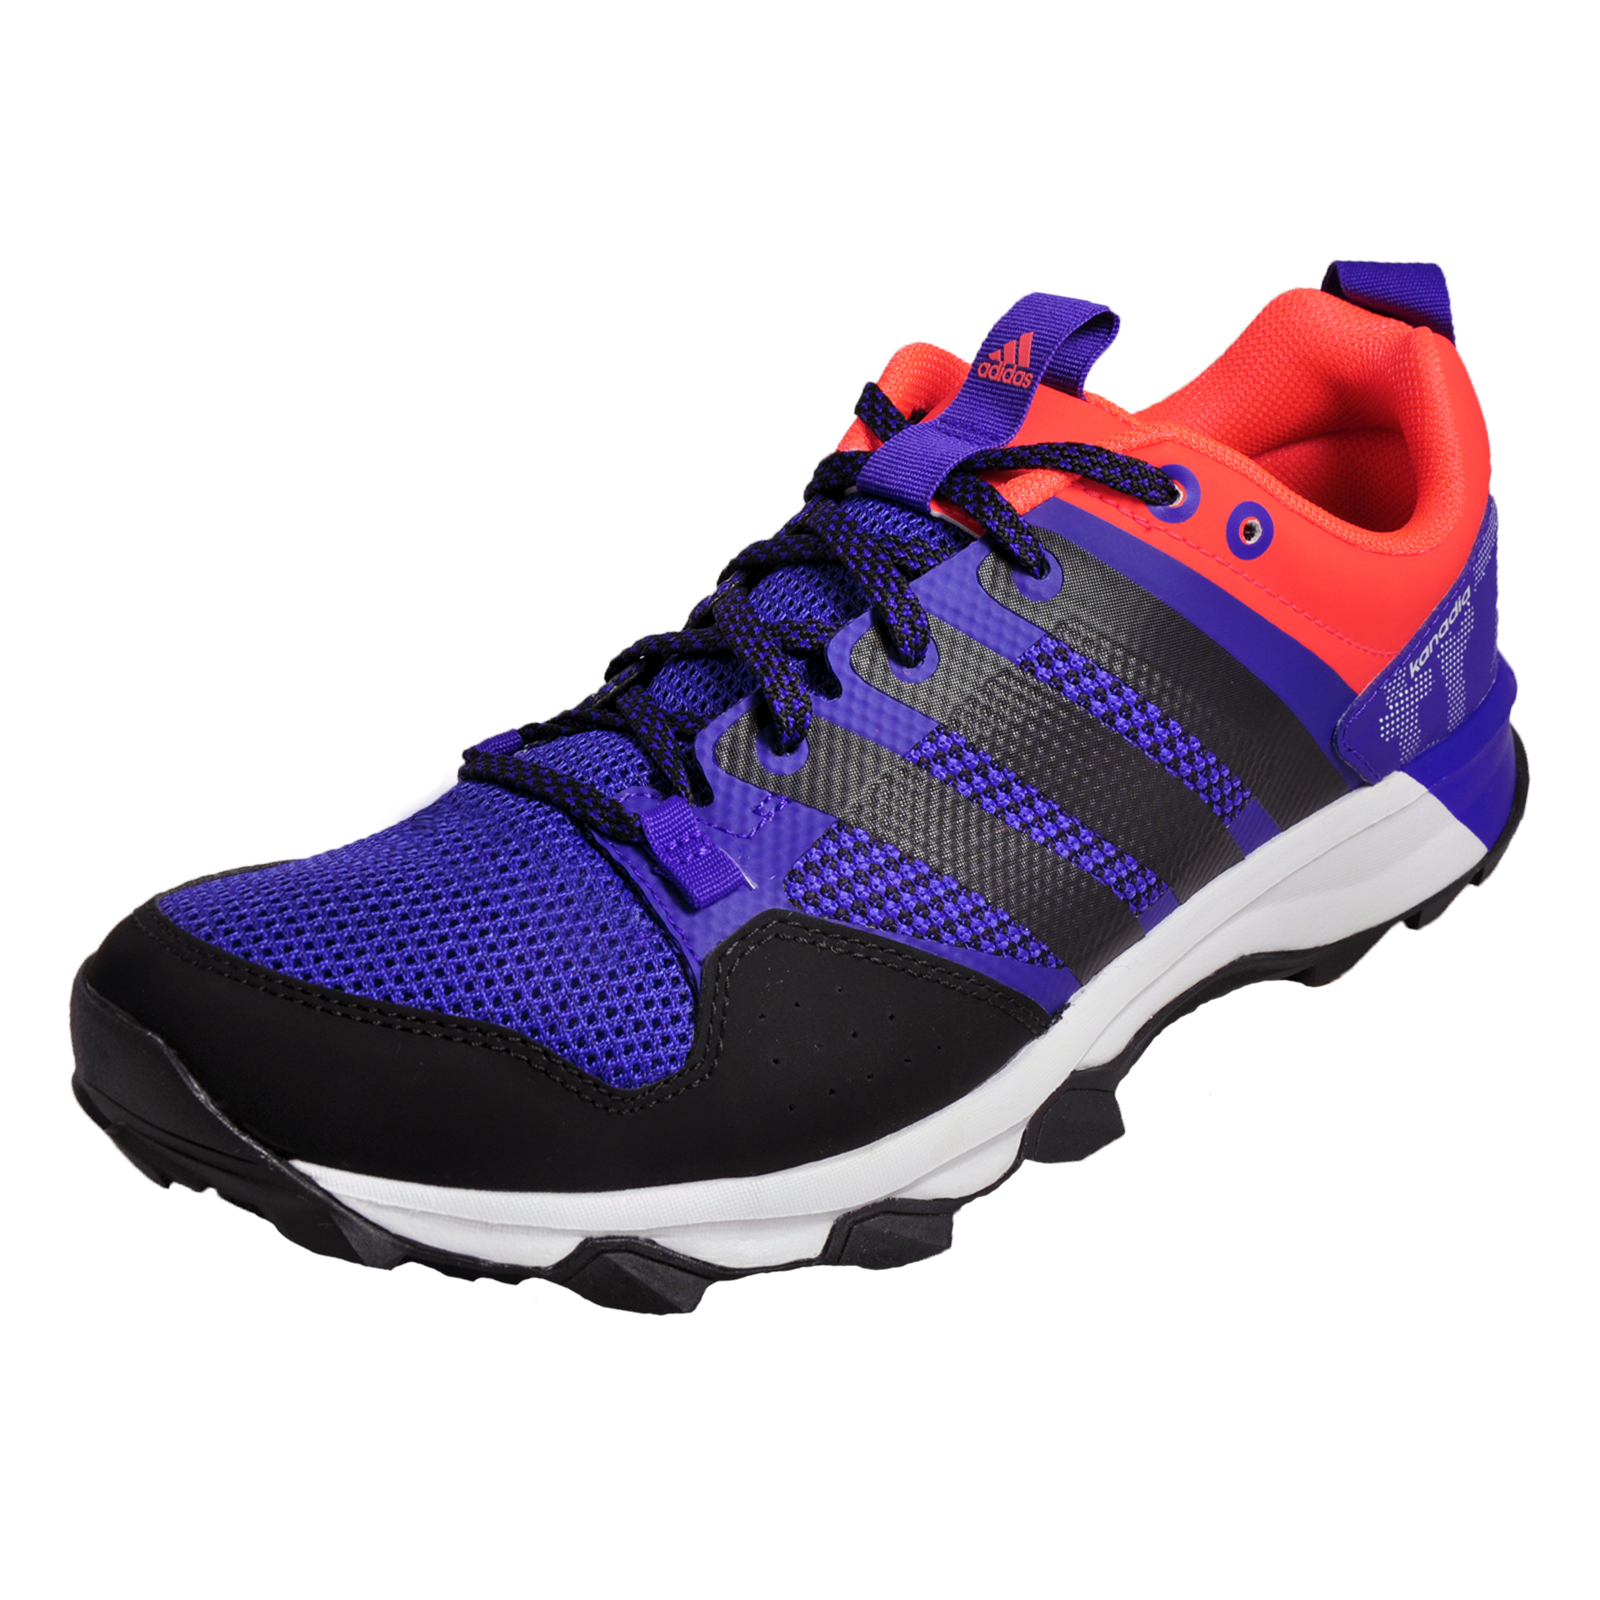 newest d519f 2185a Details about Adidas Kanadia 7TRM Mens All Terrain Trail Running Shoes  Trainers Blue